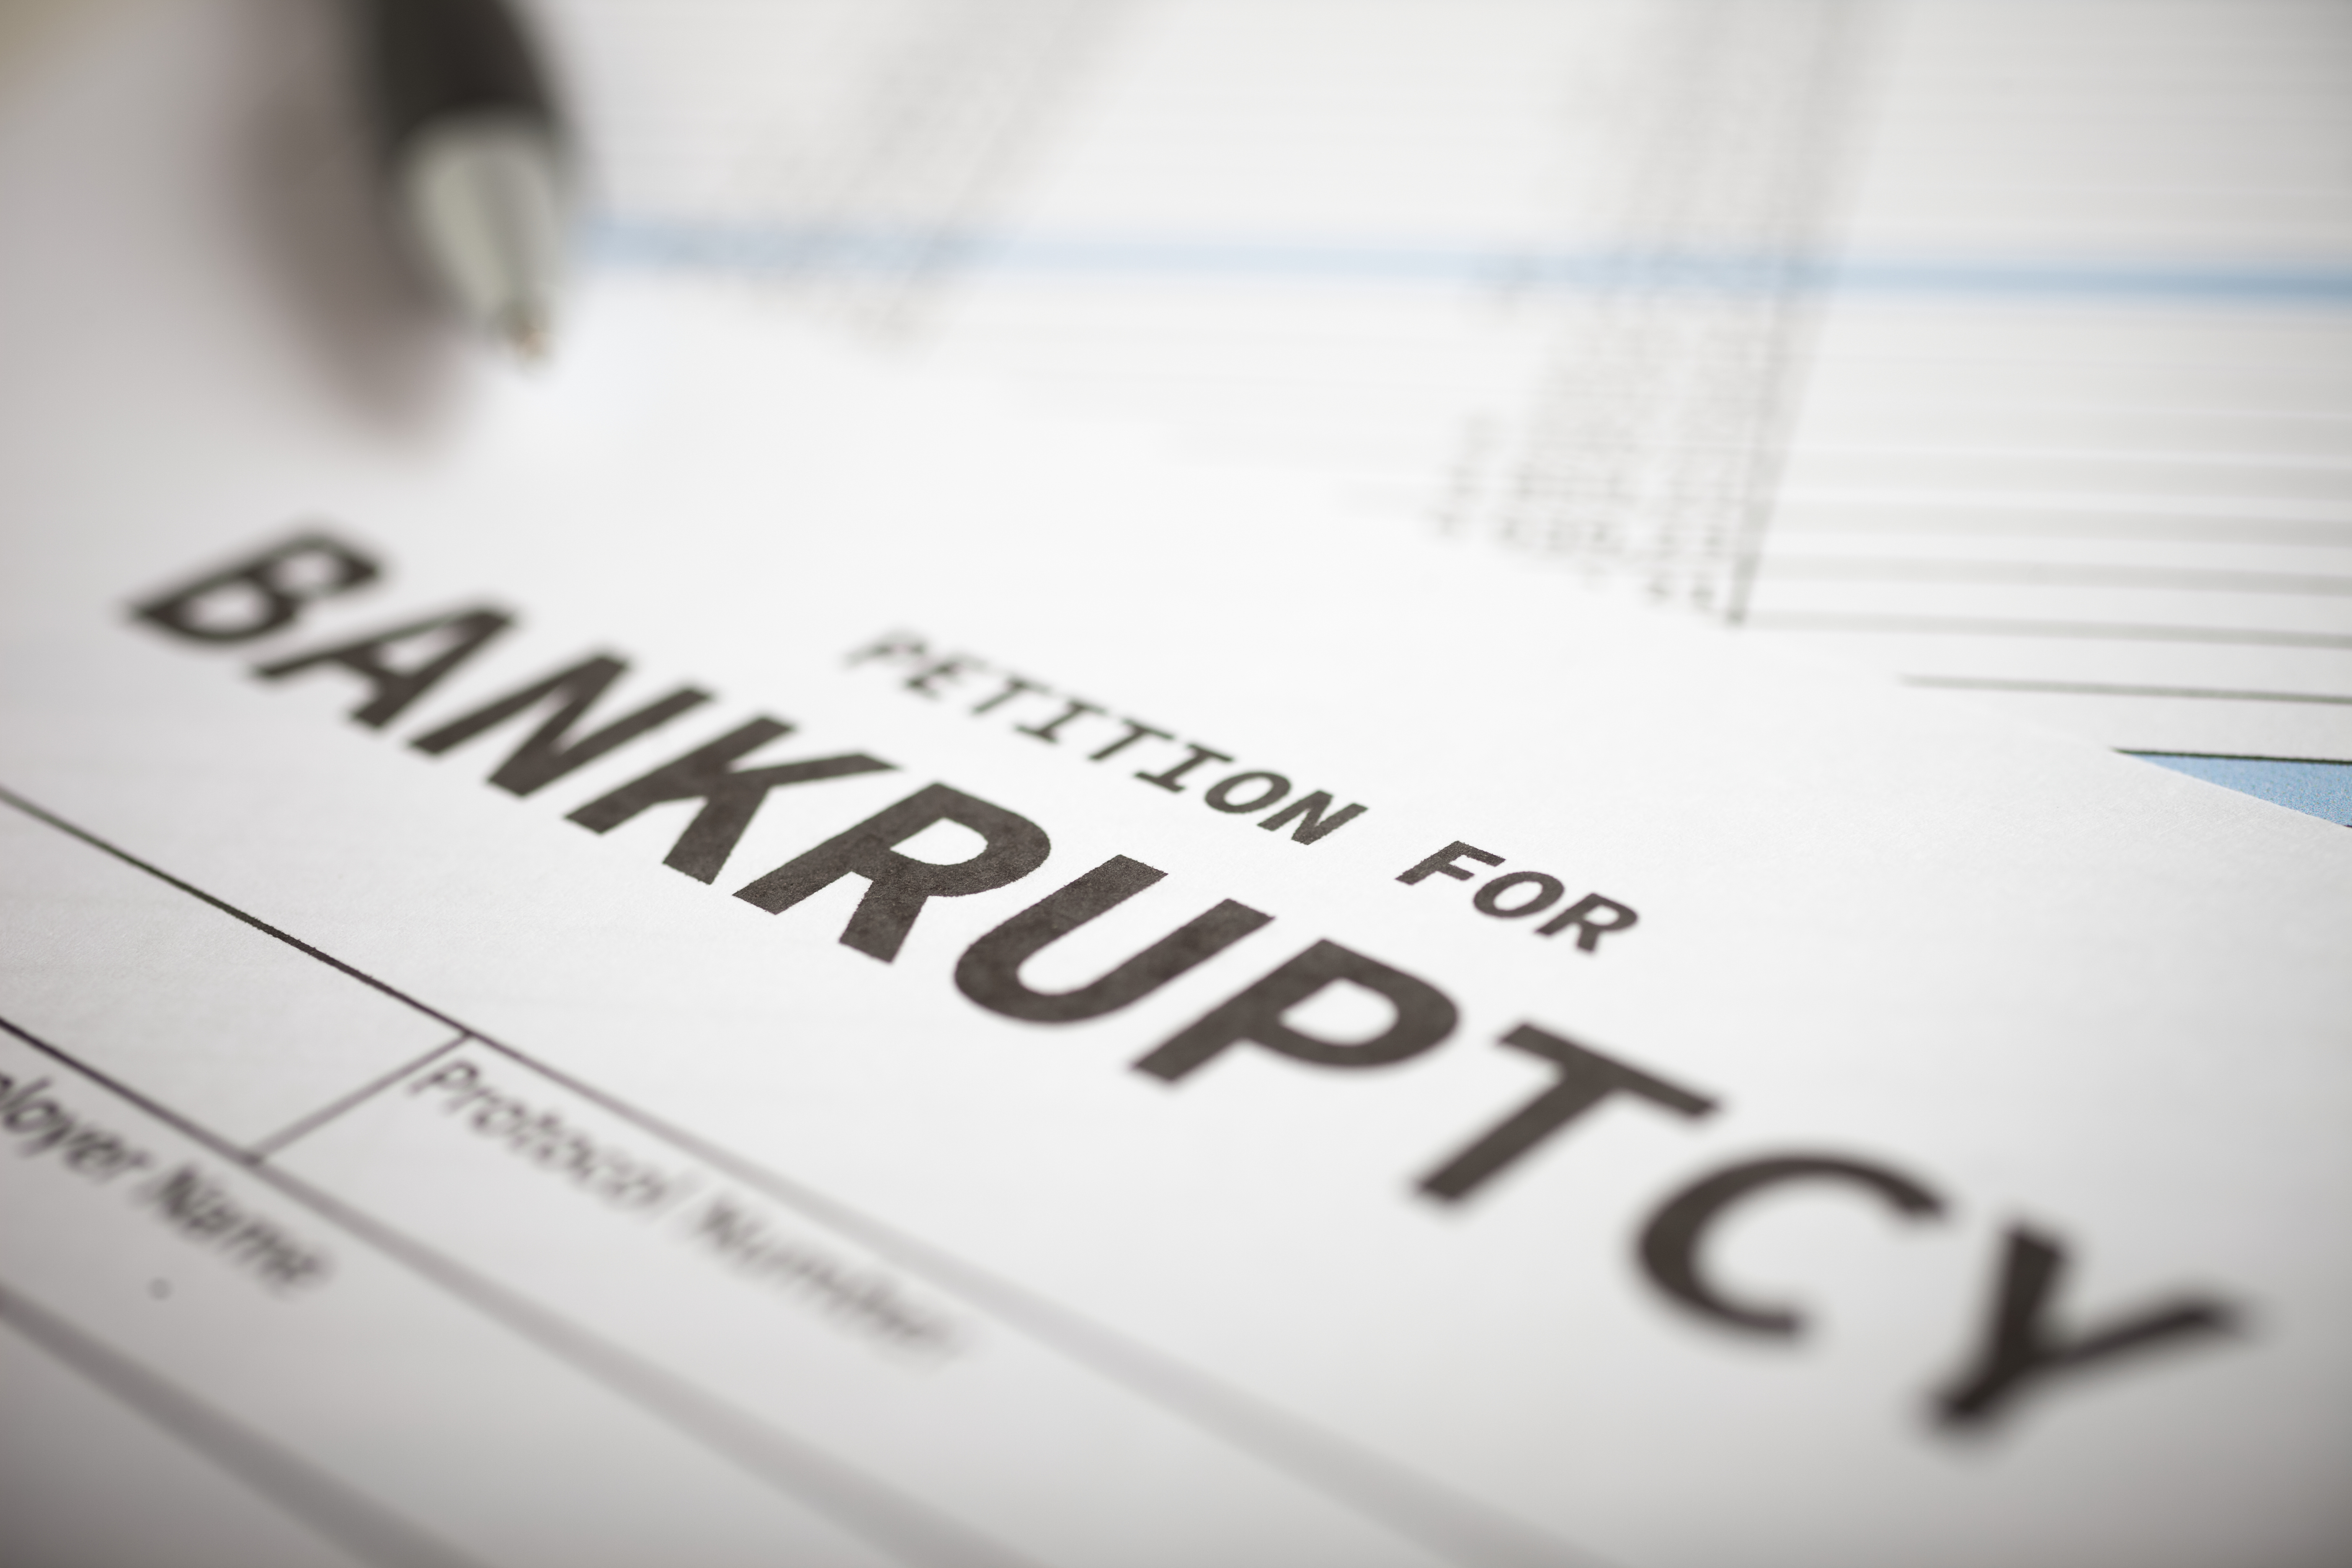 a file for filing a petition for bankruptcy